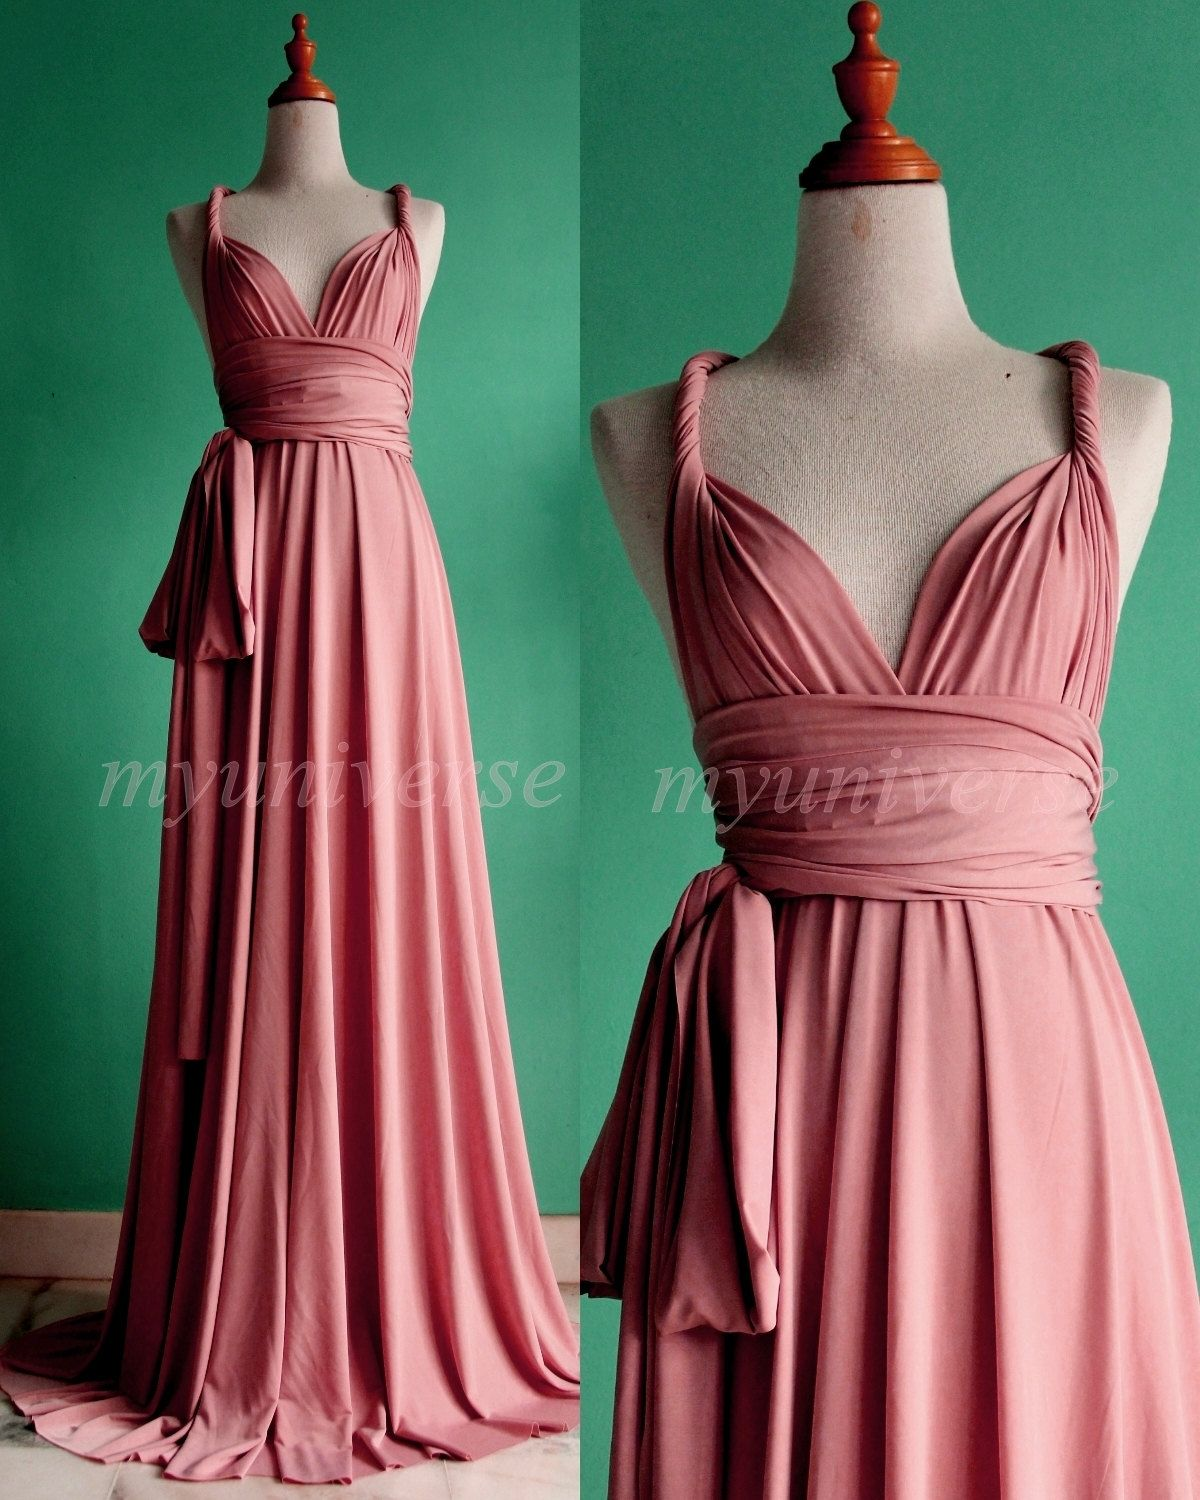 Dark Pink Wedding Dresses: Prom Dress Bridesmaid Dress Dark Pink Maxi Dress Wedding